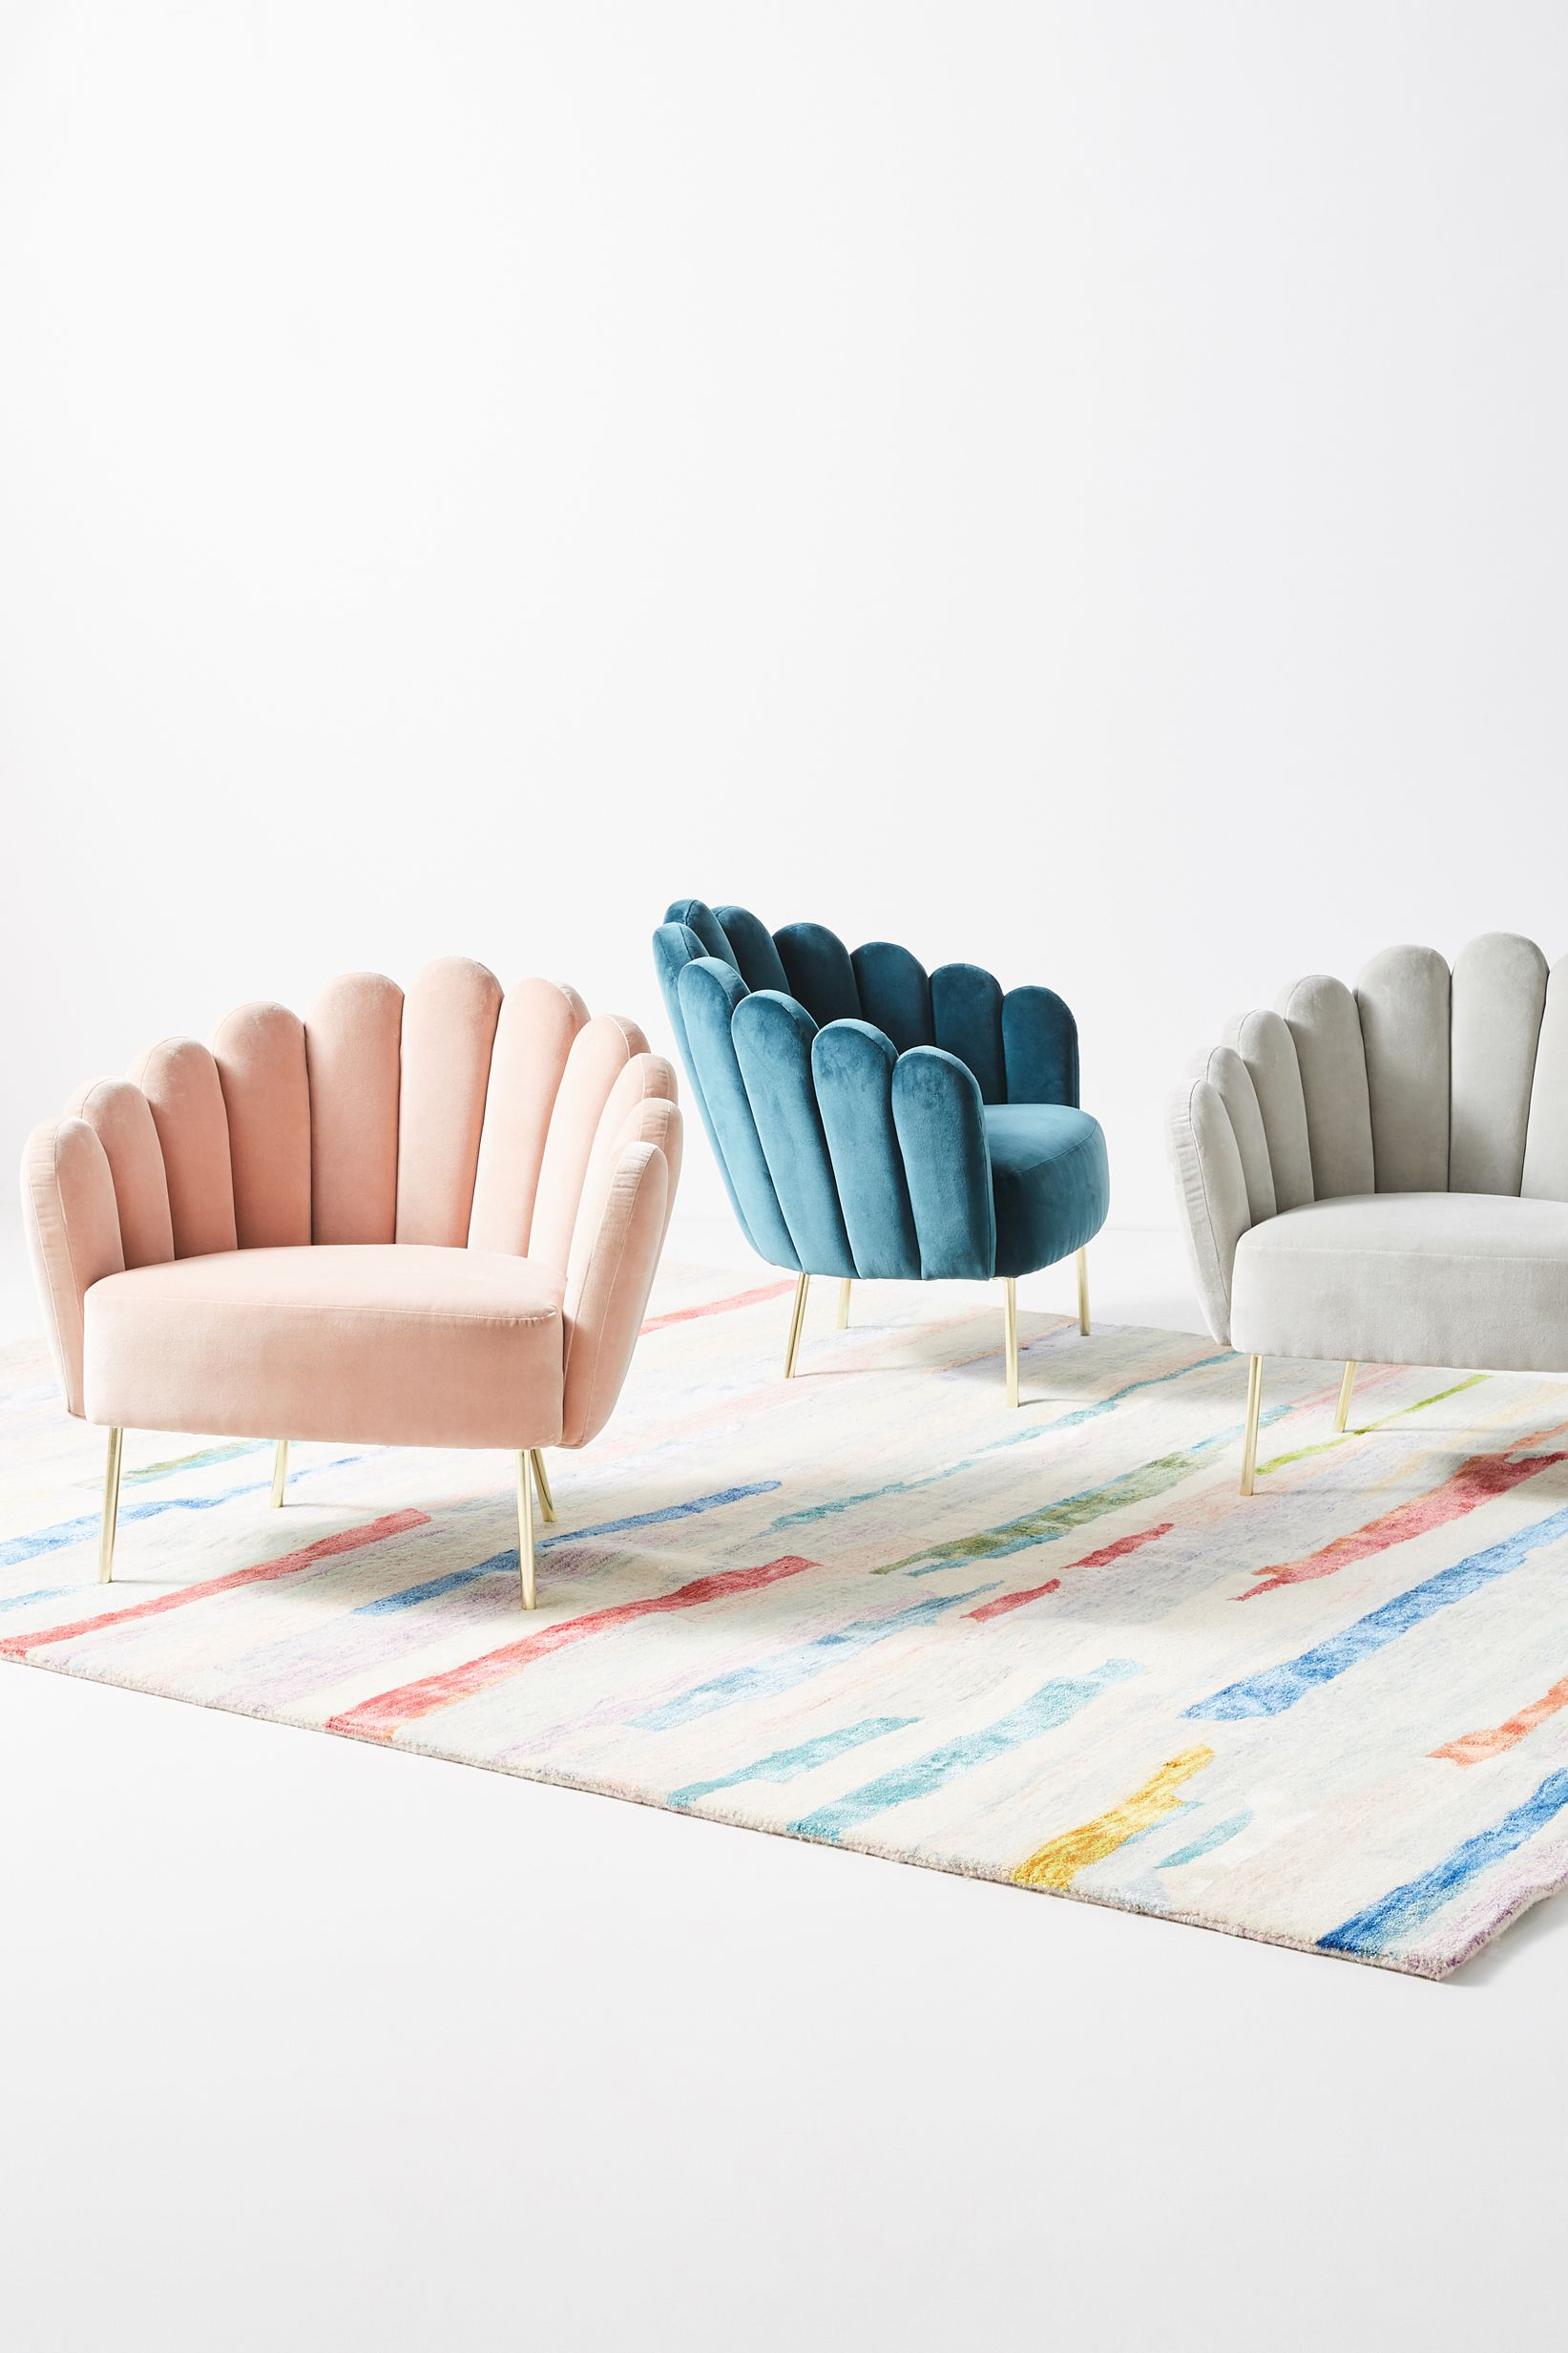 Miraculous Anthropologies New Collaboration With Bethan Gray Features Short Links Chair Design For Home Short Linksinfo